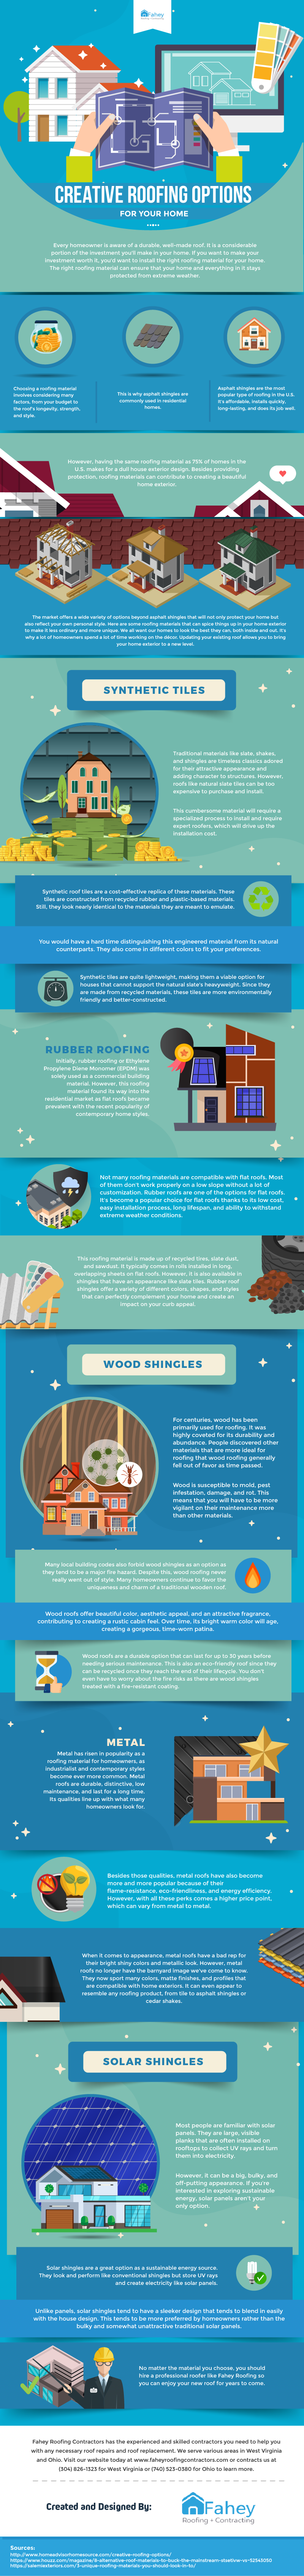 creative-roofing-options-for-your-home-infographic